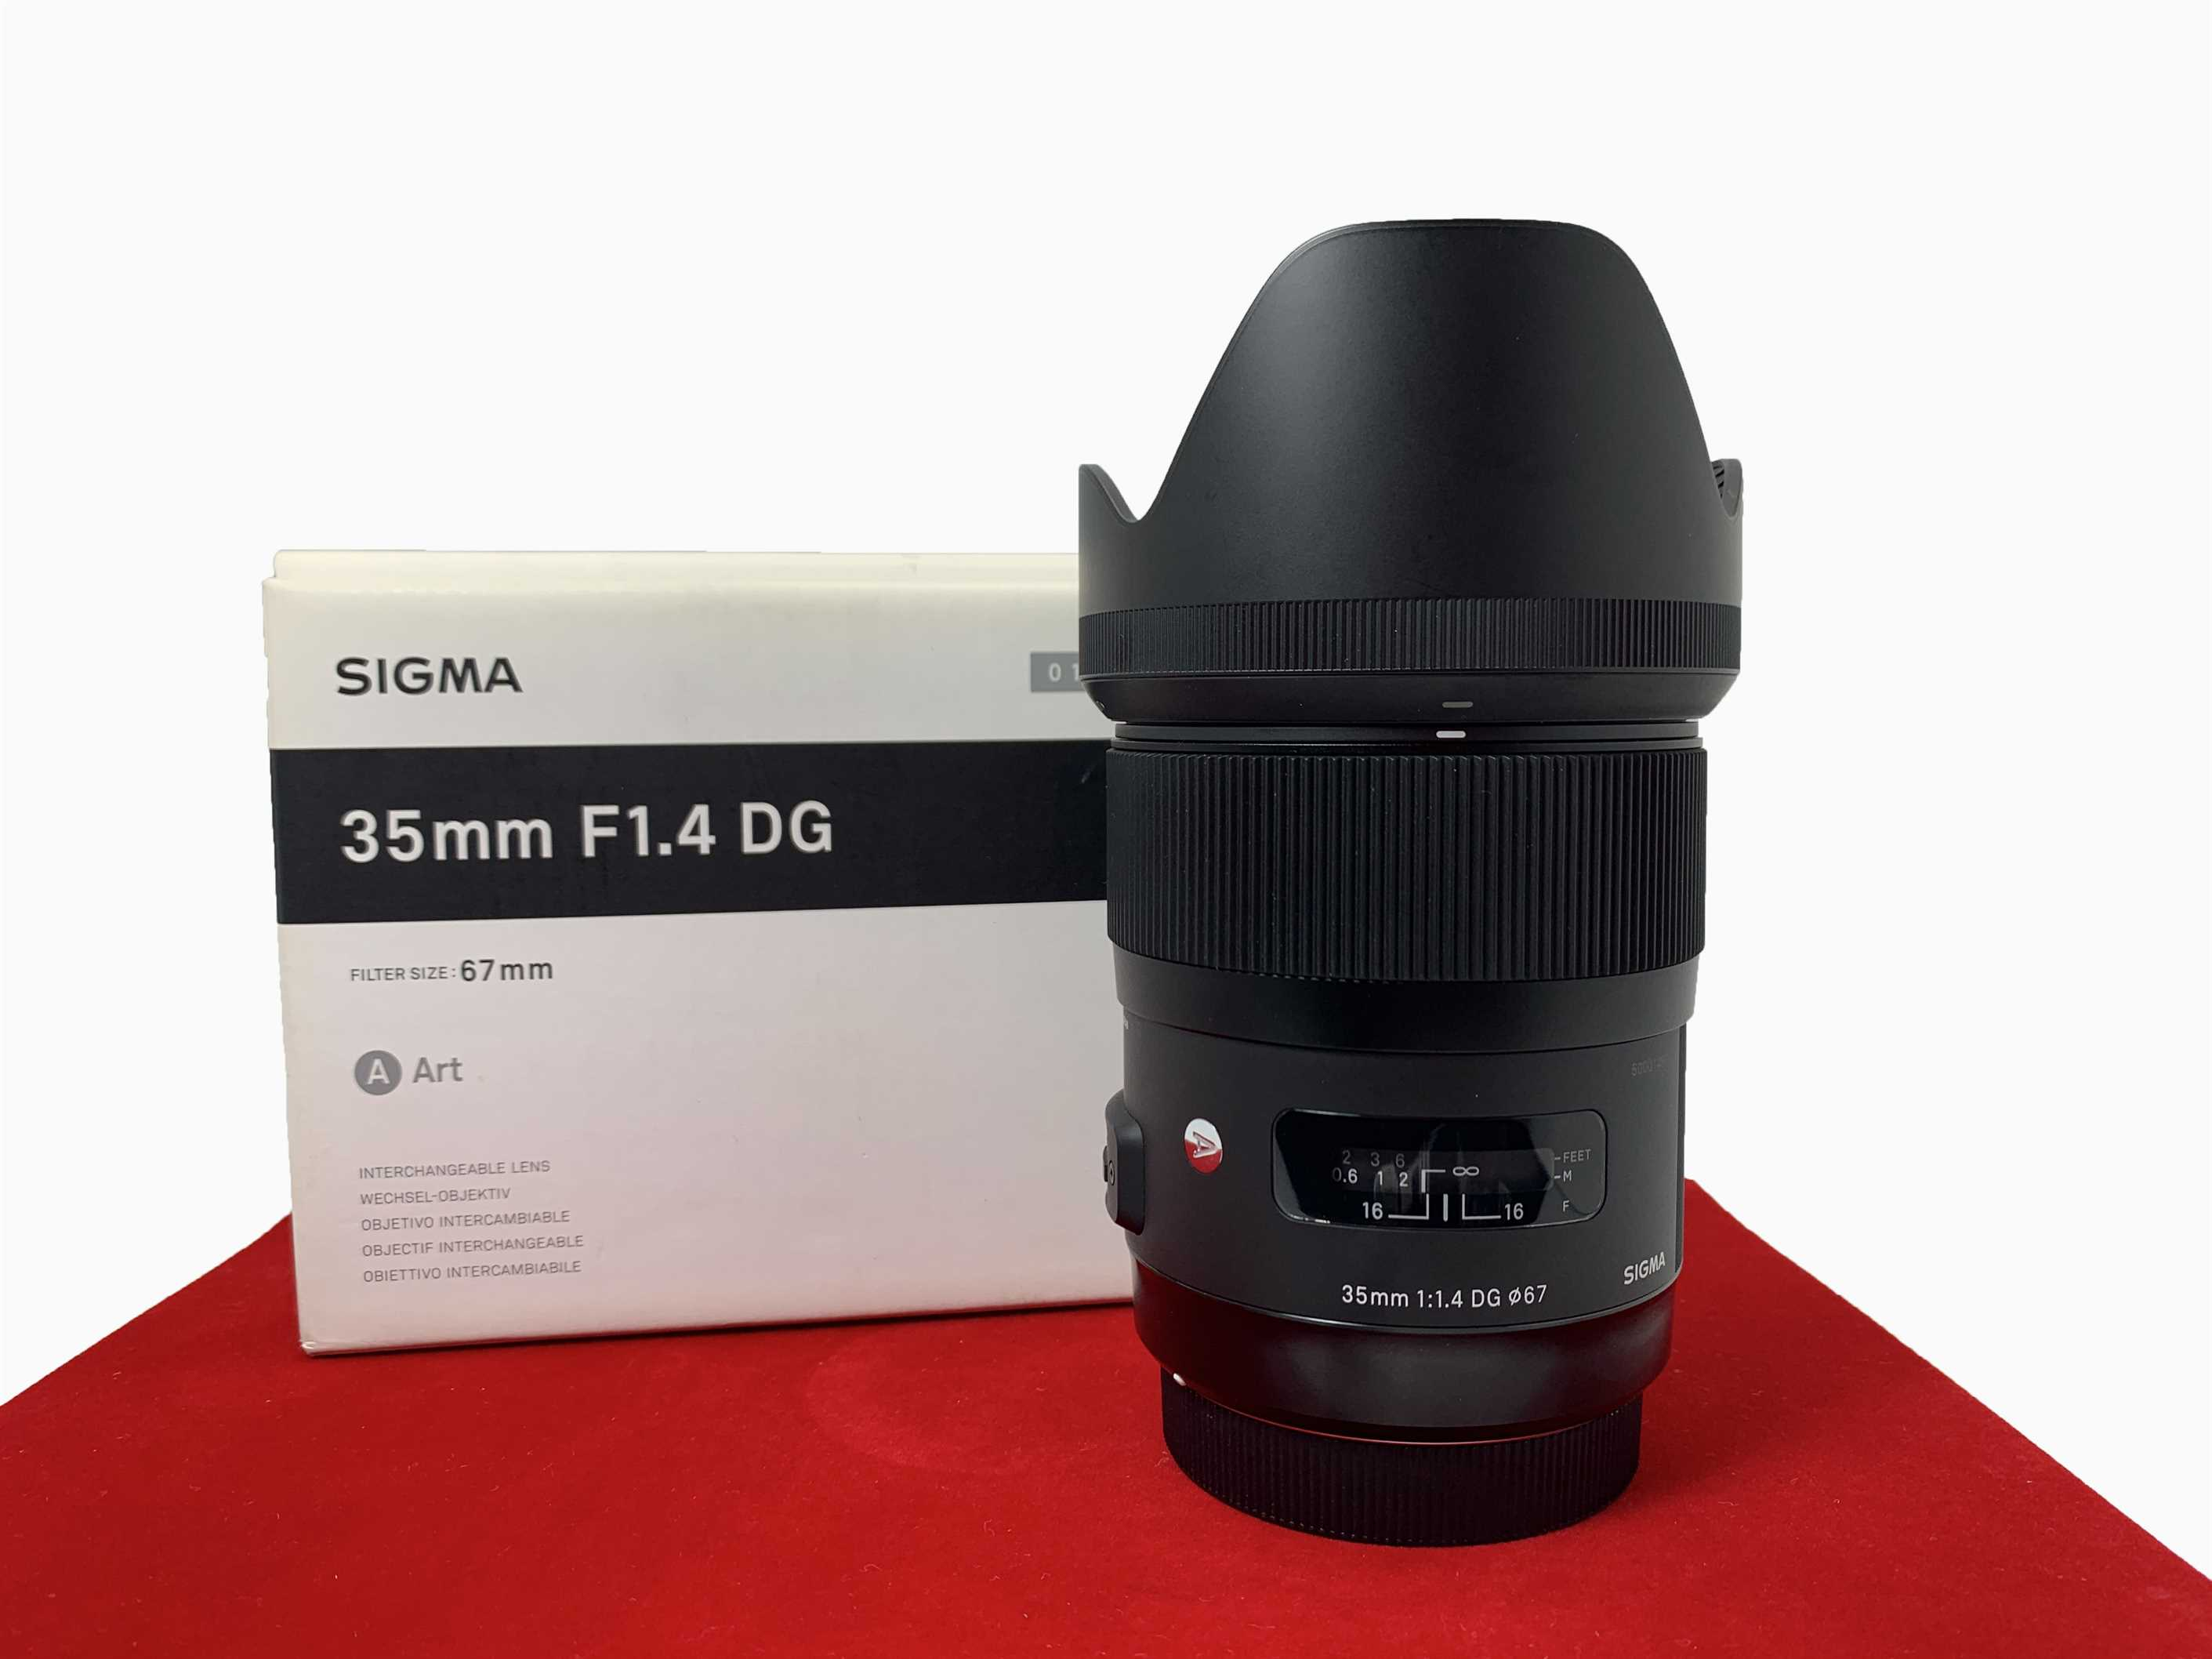 [USED-PJ33] SIGMA 35MM F1.4 DG ART LENS For Canon, 95% Like New Condition (S/N:50001487)